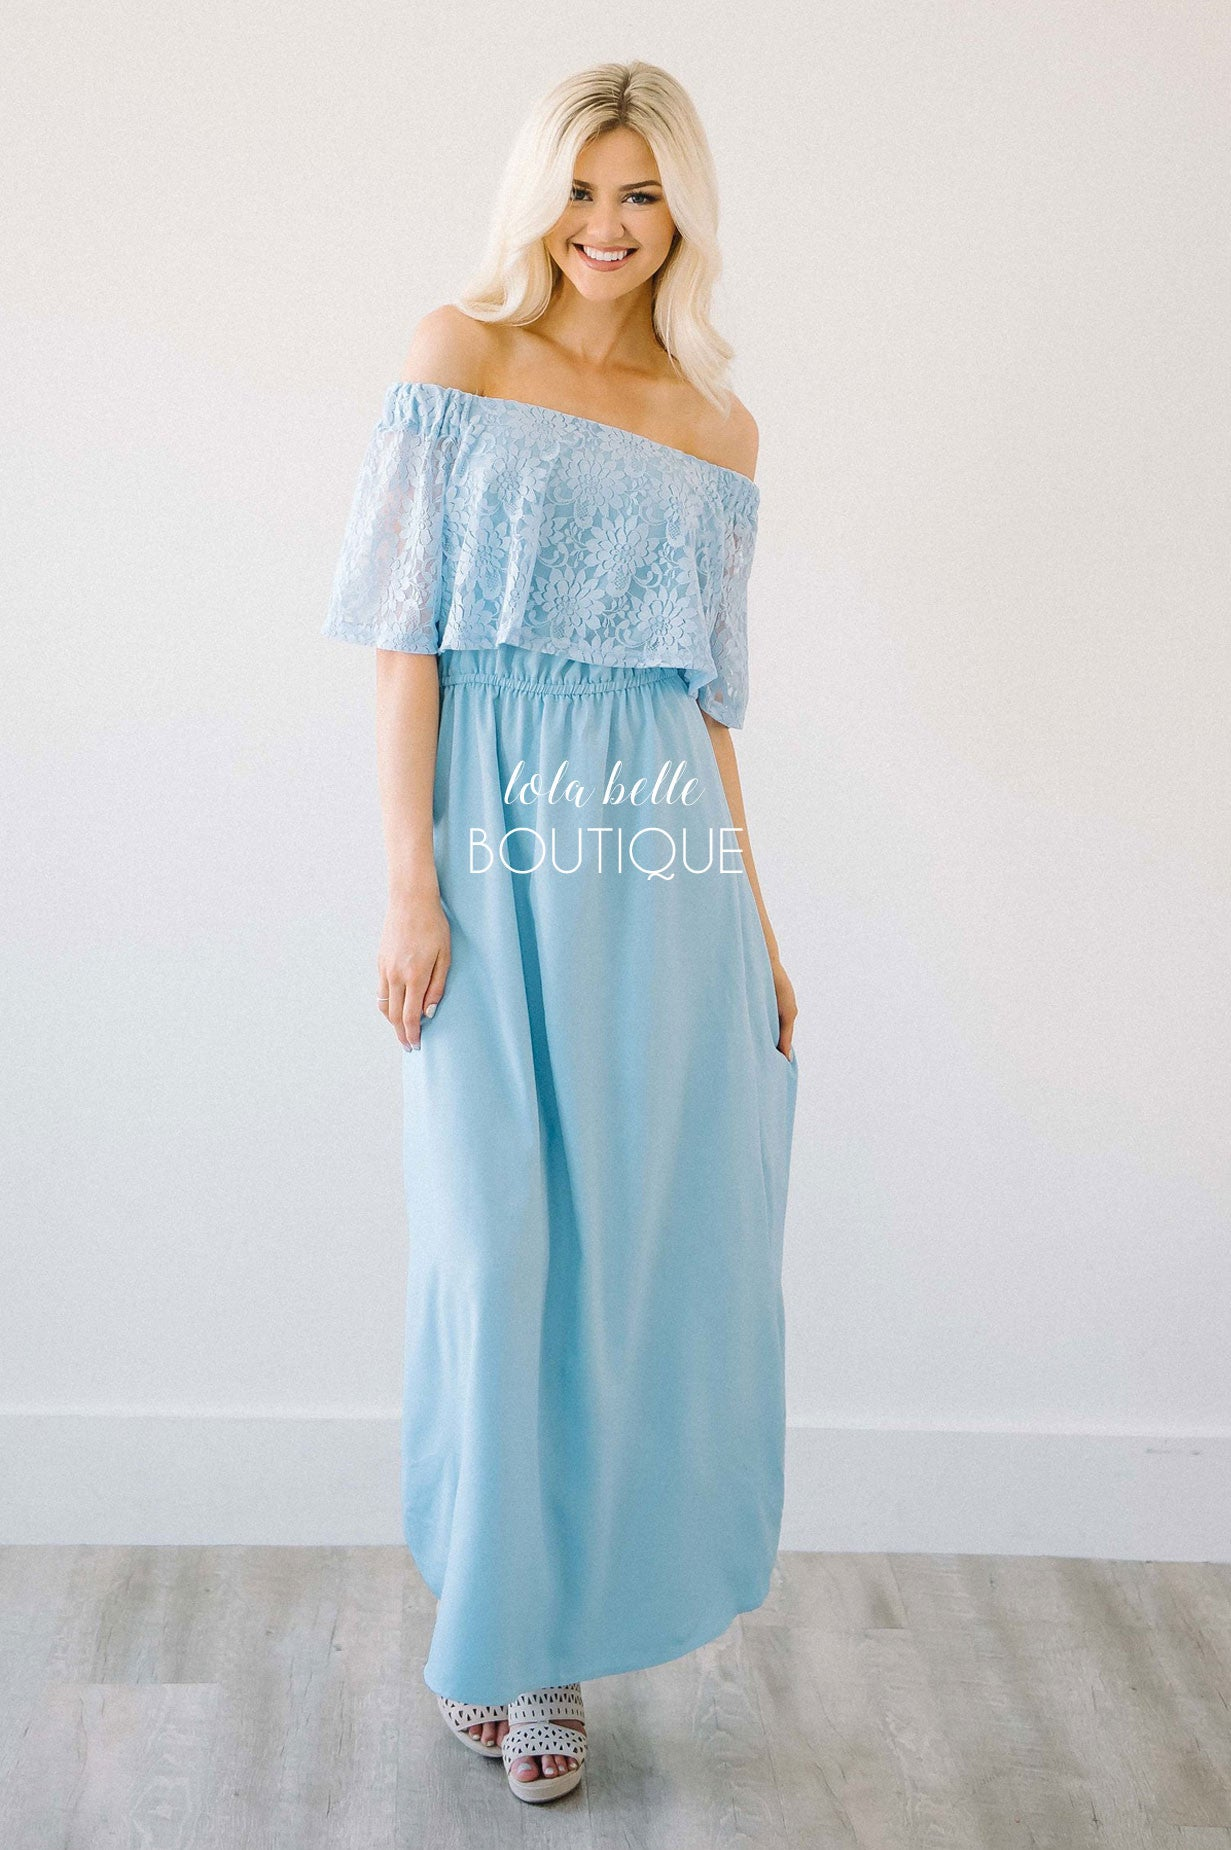 Southern Charm Sky Blue Off The Shoulder Maxi Dress – Shop Lola ...